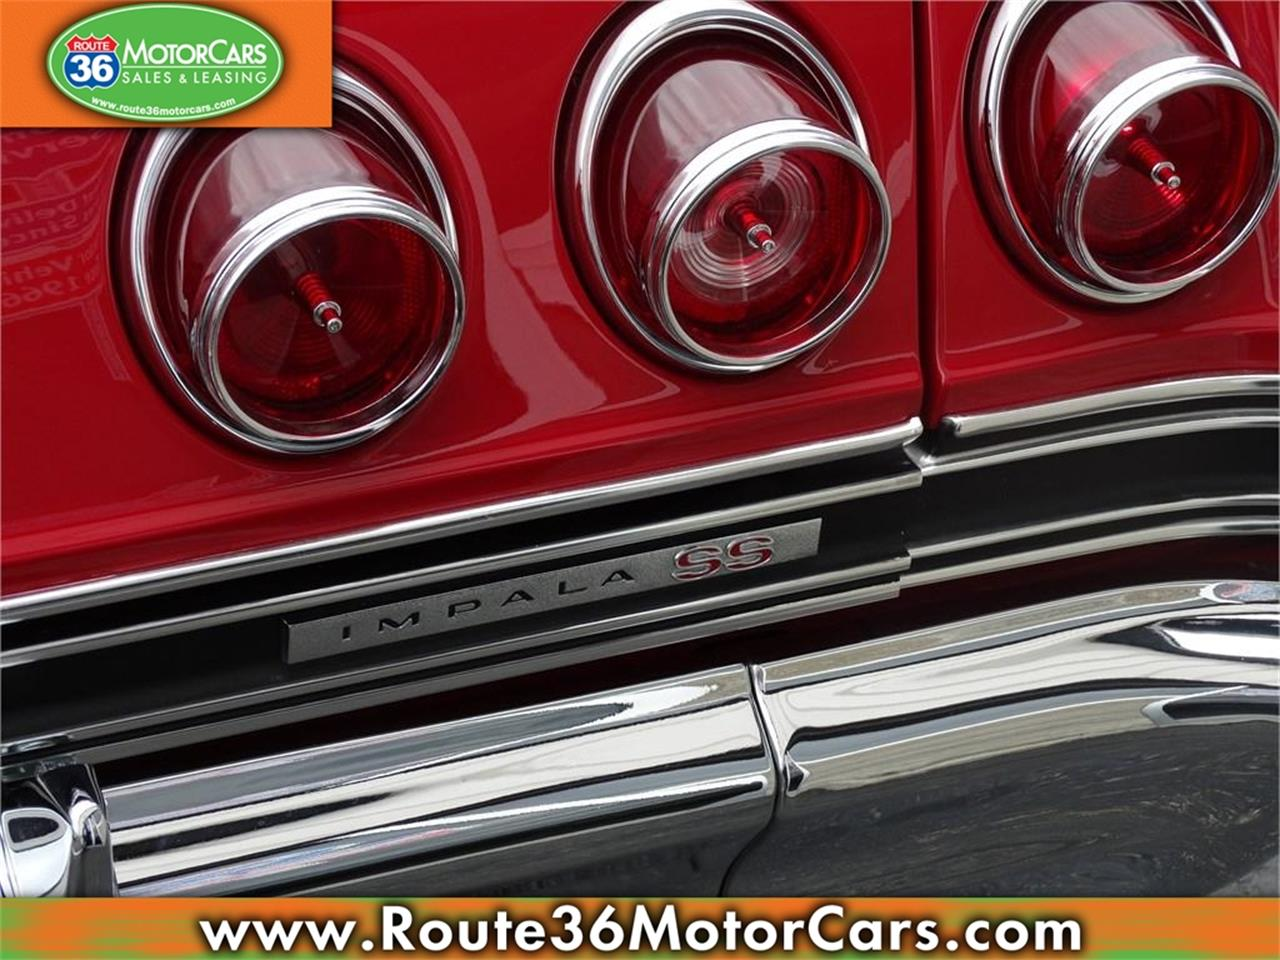 Large Picture of '65 Impala SS - $84,475.00 Offered by Route 36 Motor Cars - IKGZ